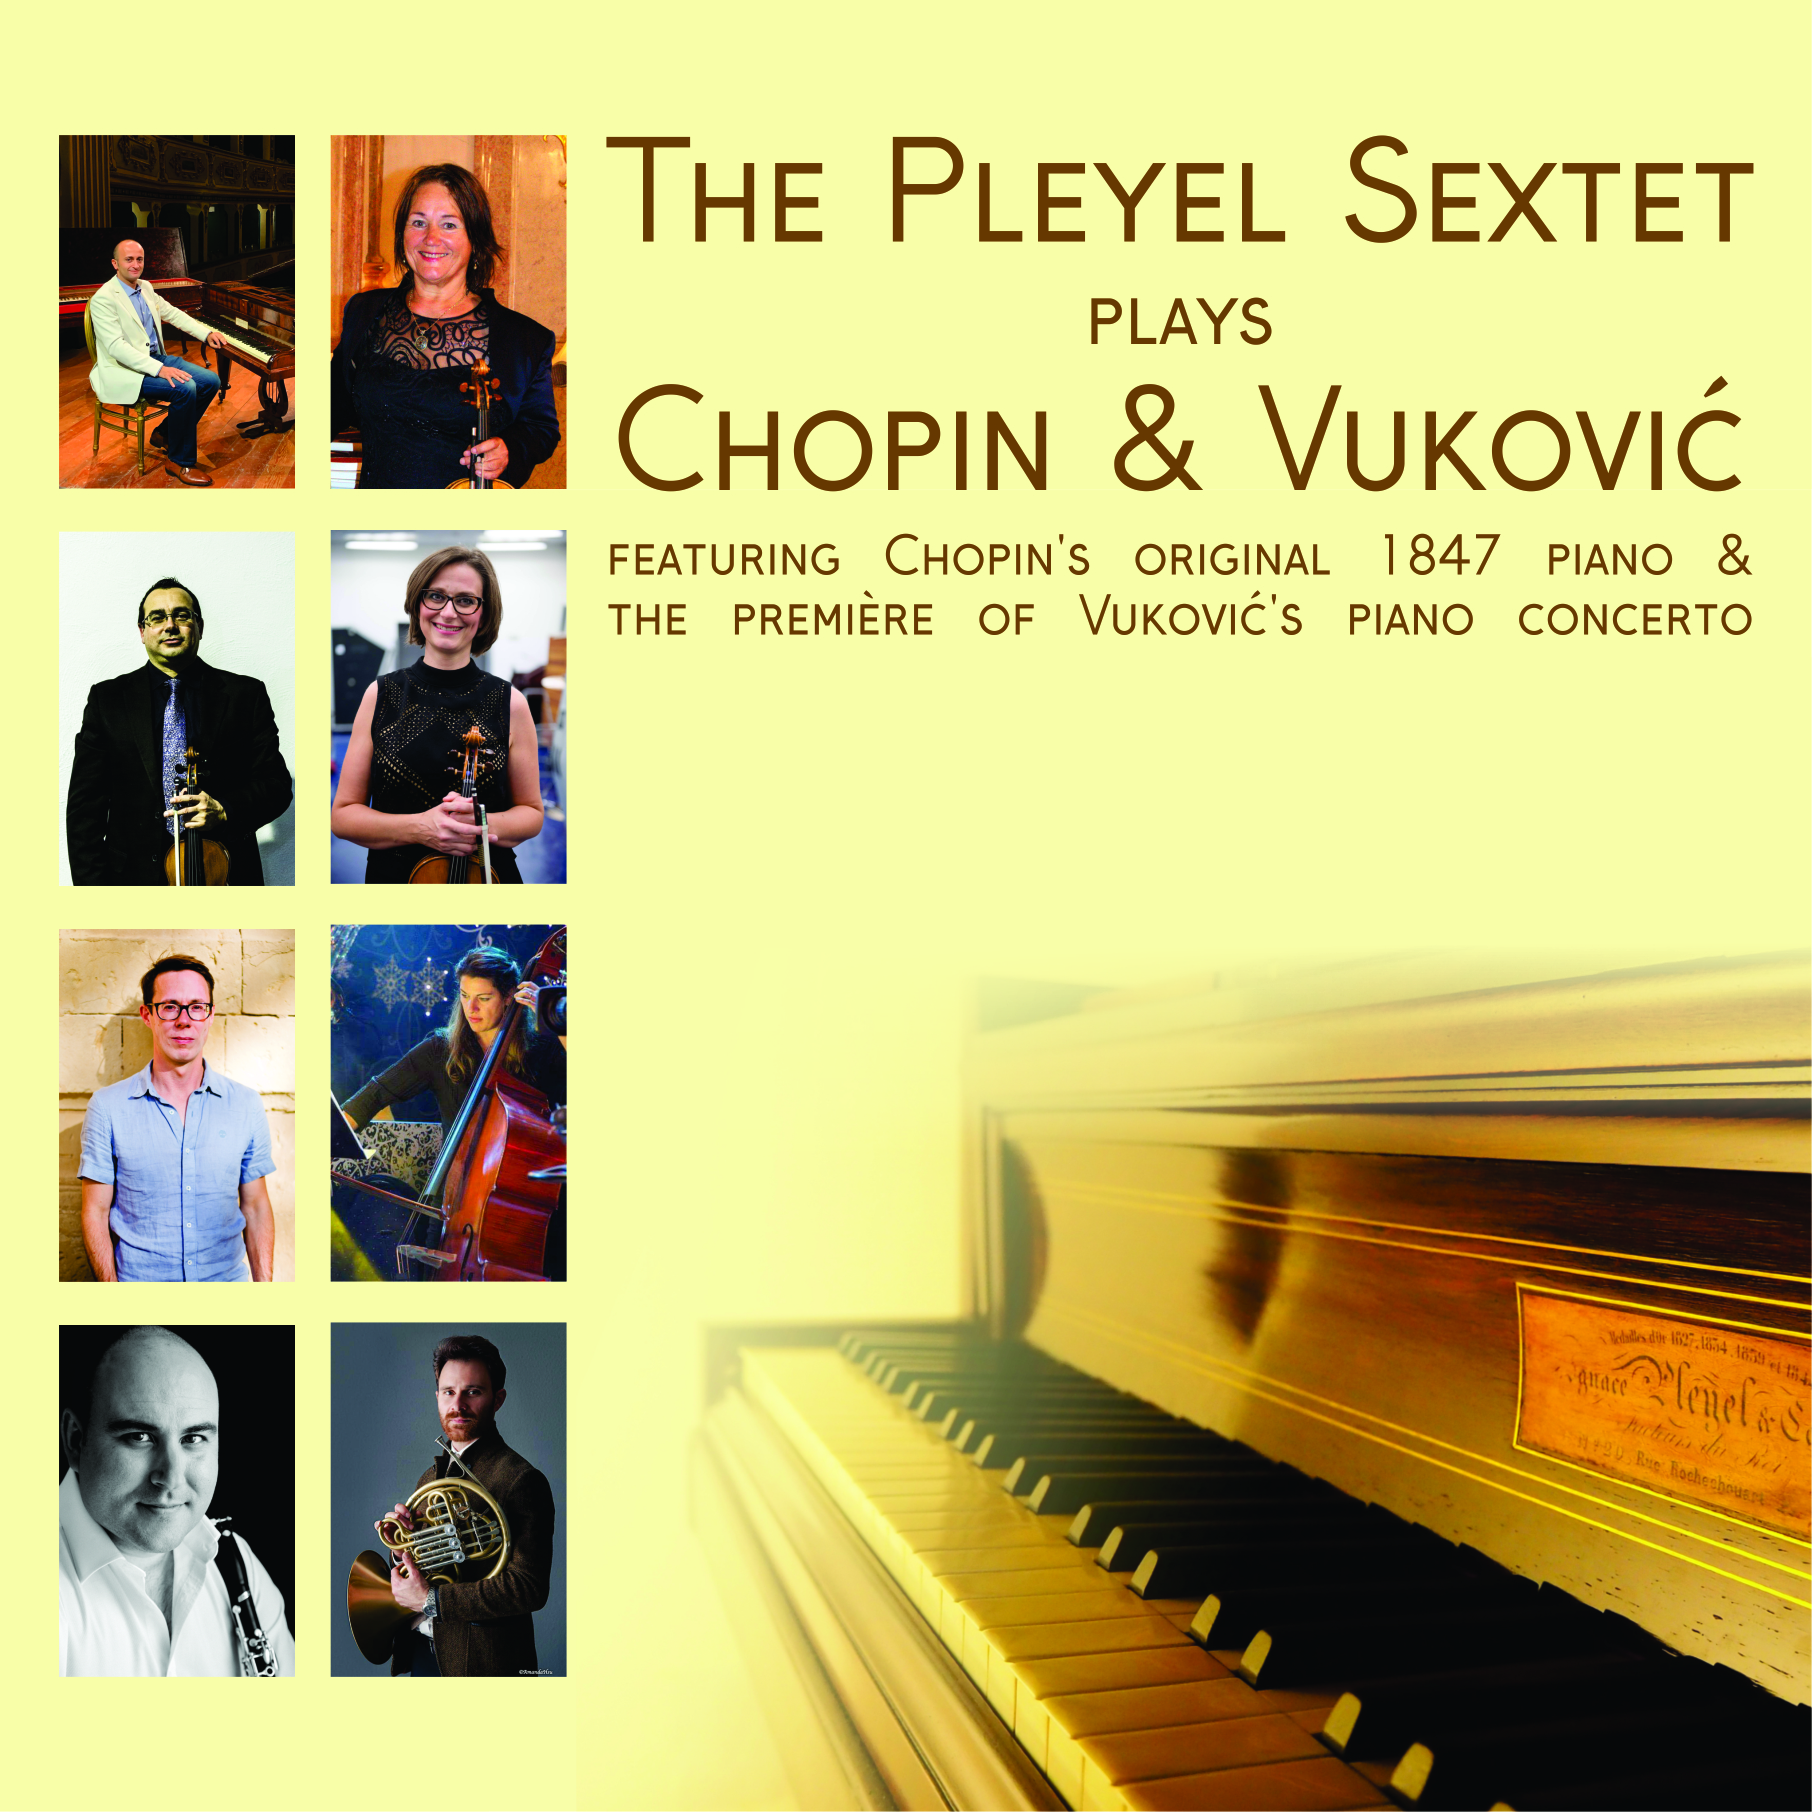 The Pleyel Sextet plays Chopin and Vuković